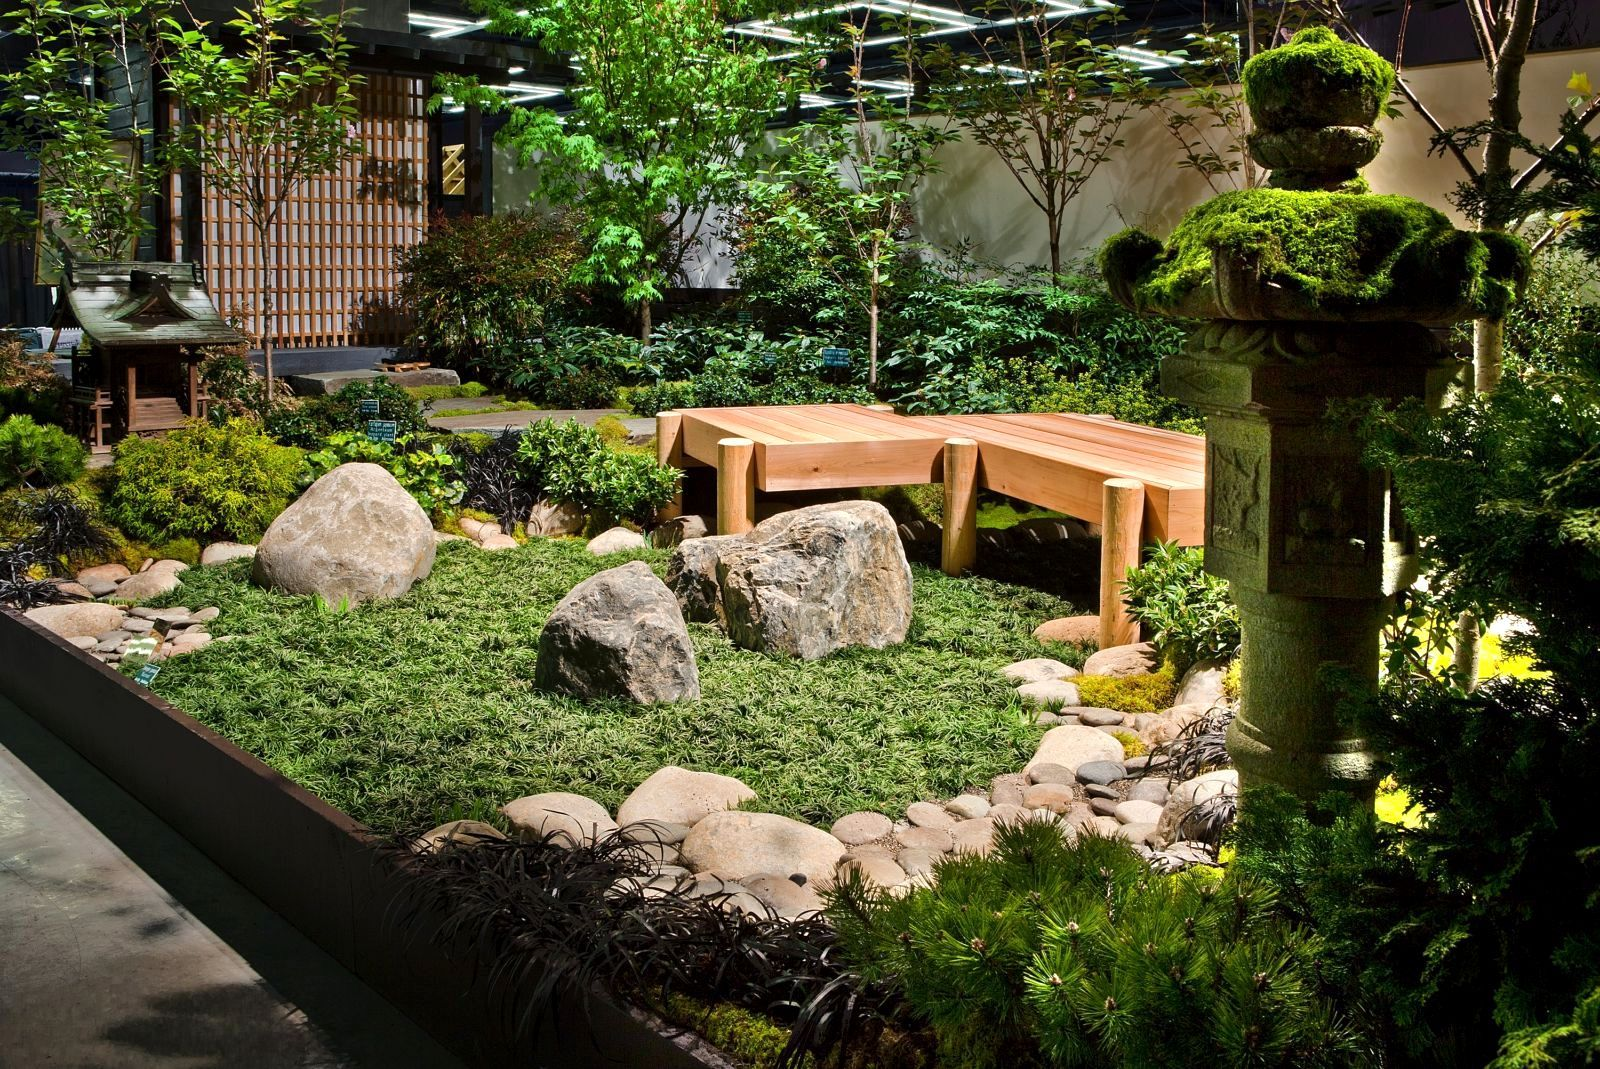 Small Backyard Japanese Garden Ideas Awesome Tiered ... on Small Backyard Japanese Garden Ideas id=26560